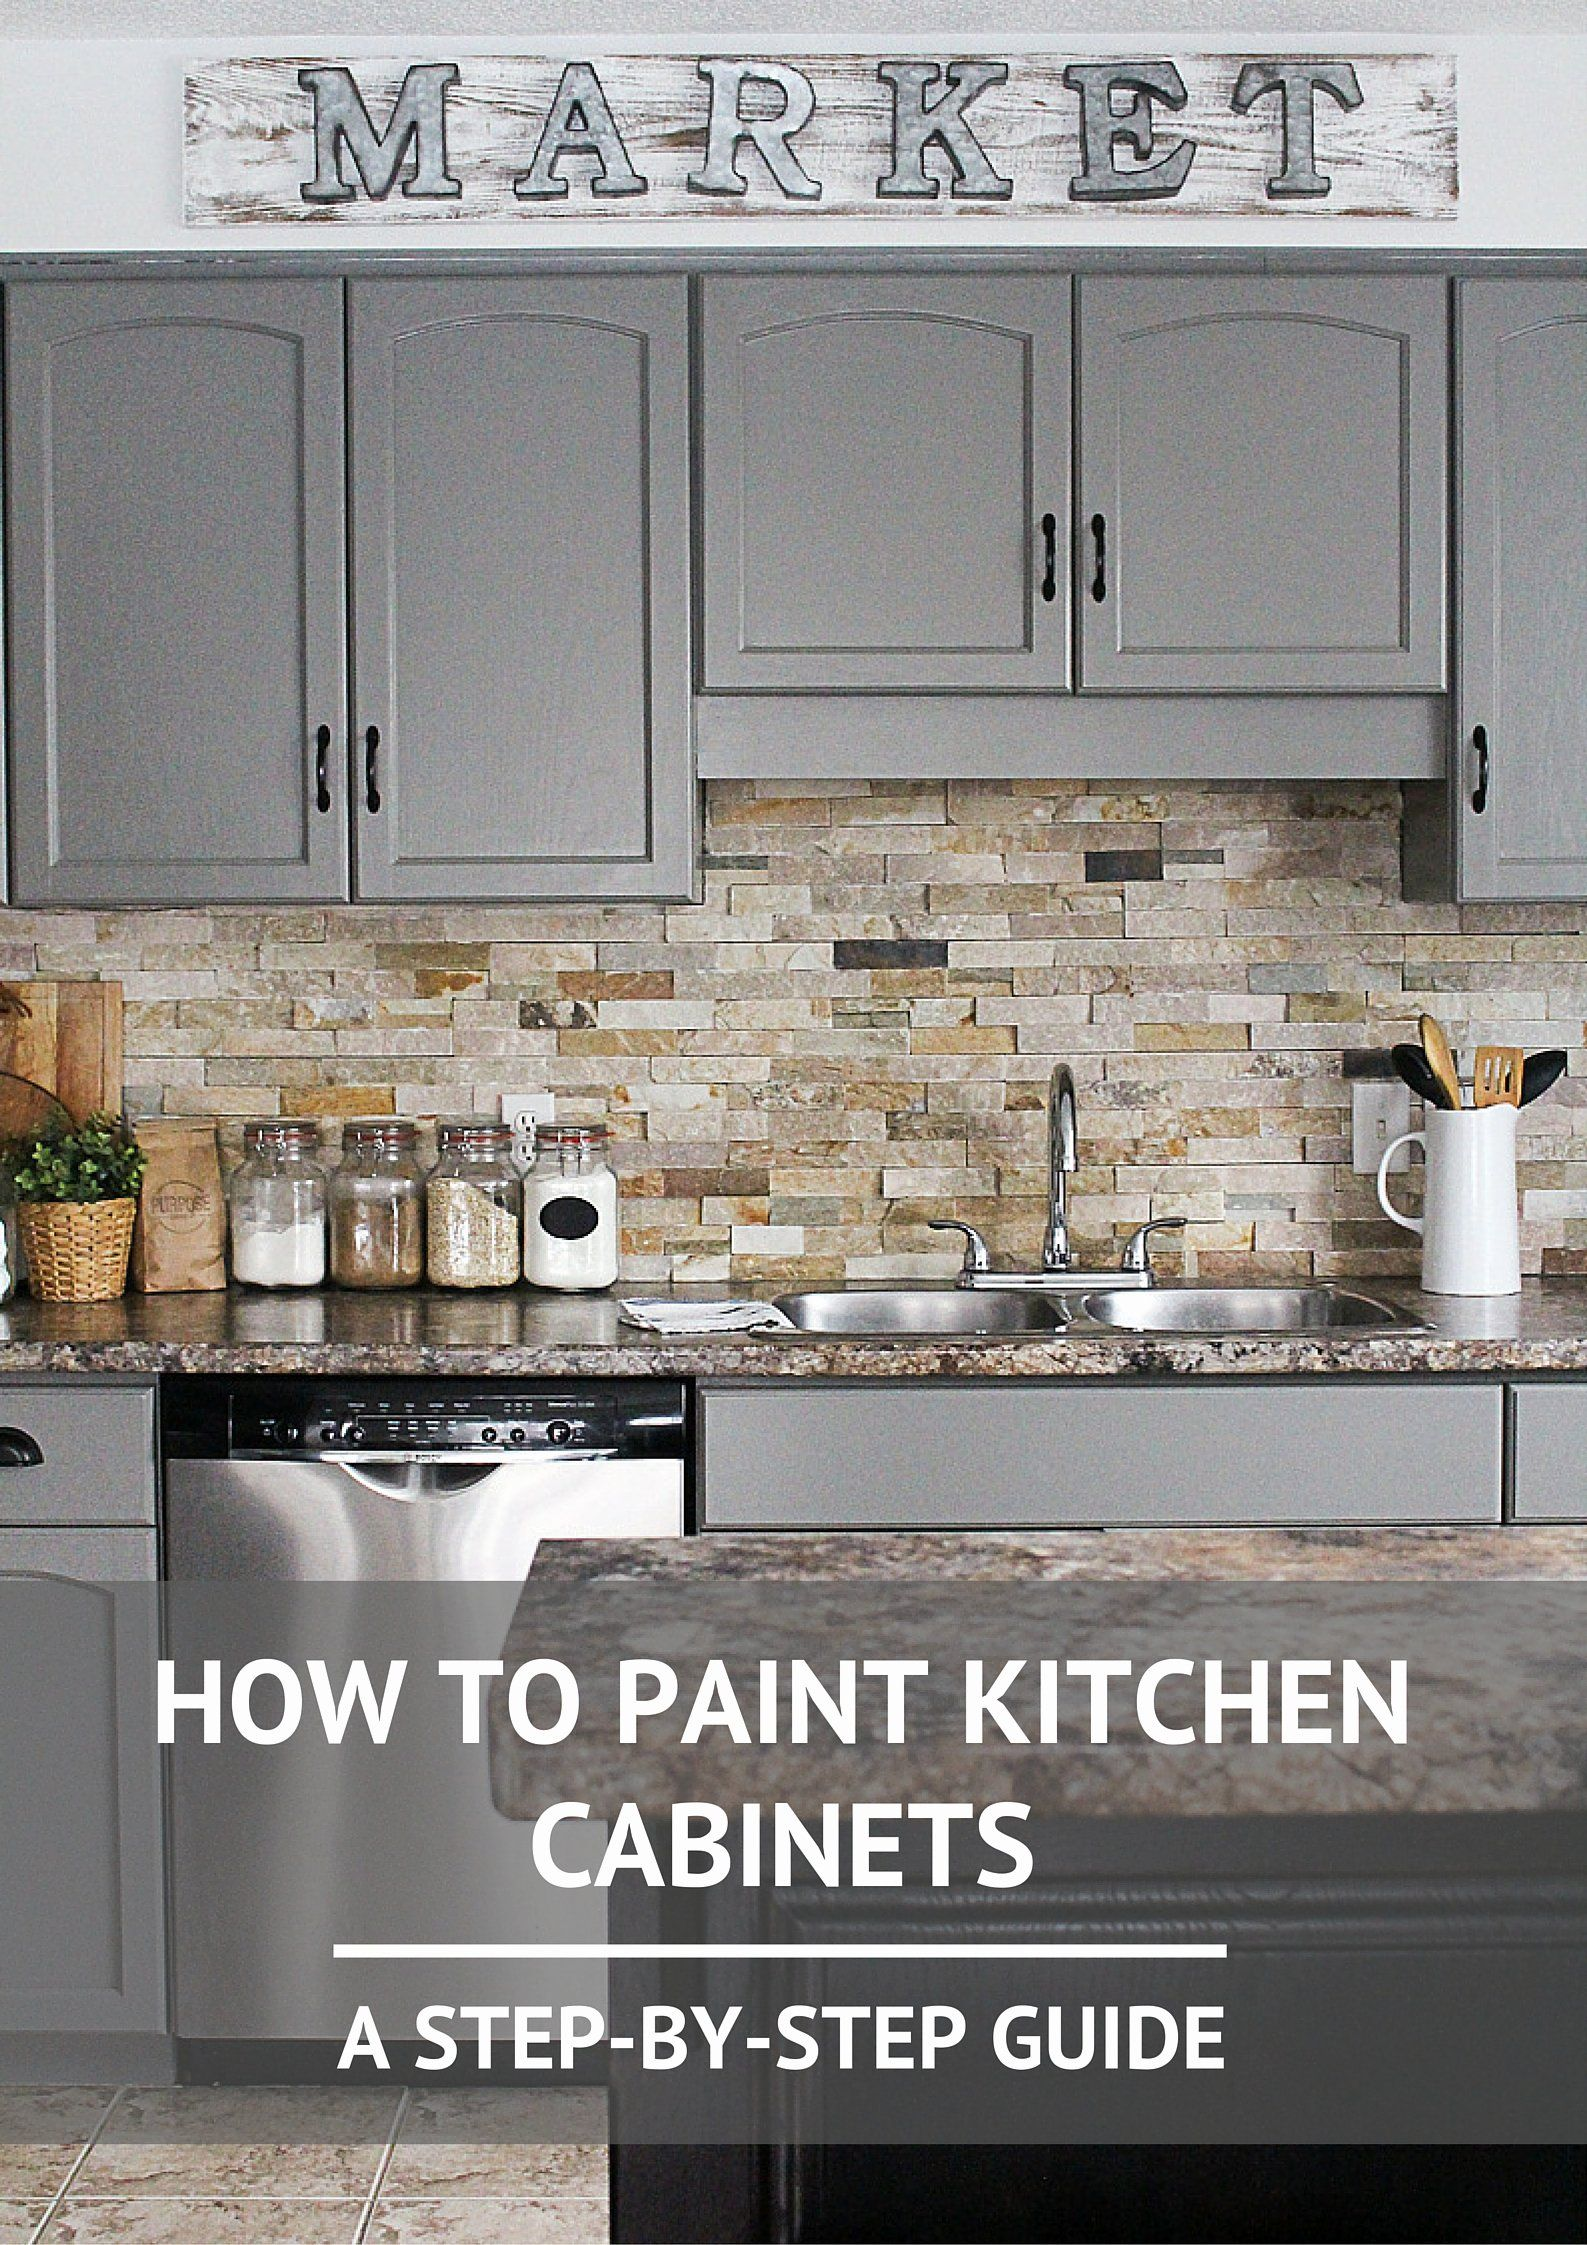 Images Of Kitchen Cabinets Beautiful How To Paint Kitchen Cabinets In 2020 Kitchen Paint Painting Kitchen Cabinets Trendy Kitchen